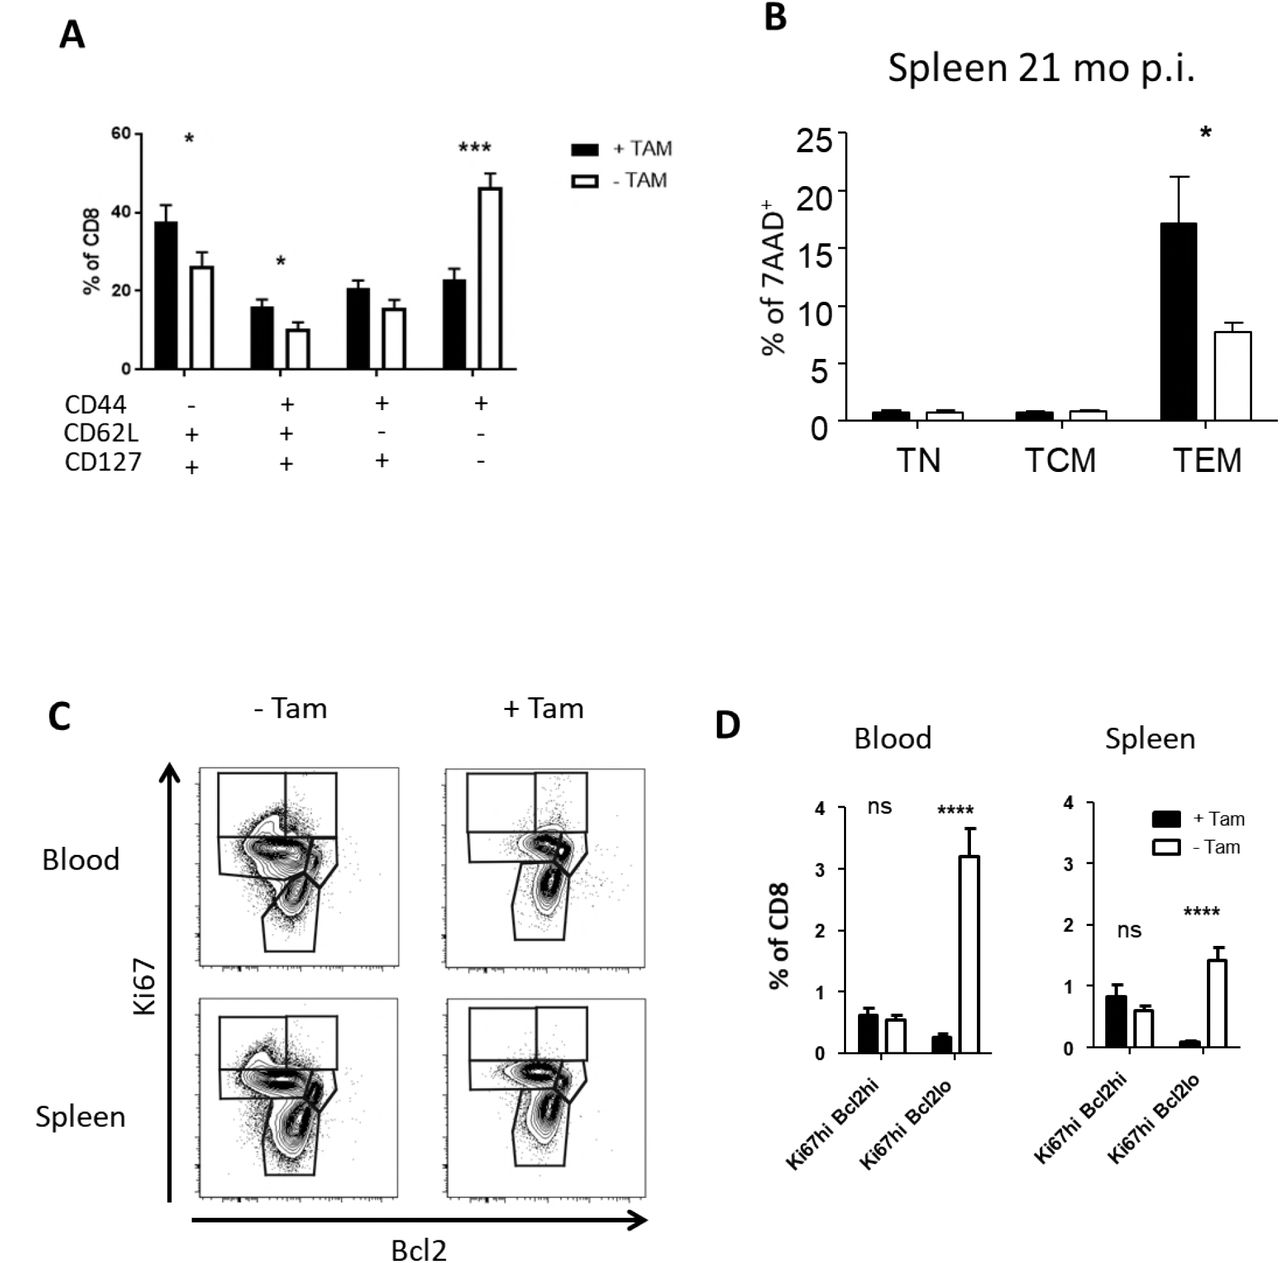 MCMV-specific CD8 T-cells are depleted by Tamoxifen treatment in R26 CreER T2 mice. (A, B) R26CreER T2 mice were infected with 10 6 PFU MCMV or 200μl PBS (mock). 60 days post infection mice received food pellets with 400 mg/kg Tamoxifen for 4 weeks (indicated by the grey rectangle). Blood was collected and analysed at 0, 7, 14, 28, 60, 90, 120, 150, 180, and 270 dpi. Blood leukocytes were stimulated with the M38 peptide (SSPPMFRV) or the gB peptide (SSIEFARL) and stained for CD8, CD44, CD127, and IFNy expression. (A) Kinetic of M38-specific CD8 T-cells before, during, and after Tamoxifen treatment. (B) Kinetic of gB-specific CD8 T-cells before, during, and after Tamoxifen treatment. Data are pooled from three independent experiments with up to 15 mice per group in total. Error bars indicate SEM. Significance was assessed by Mann-Whitney test. ** p